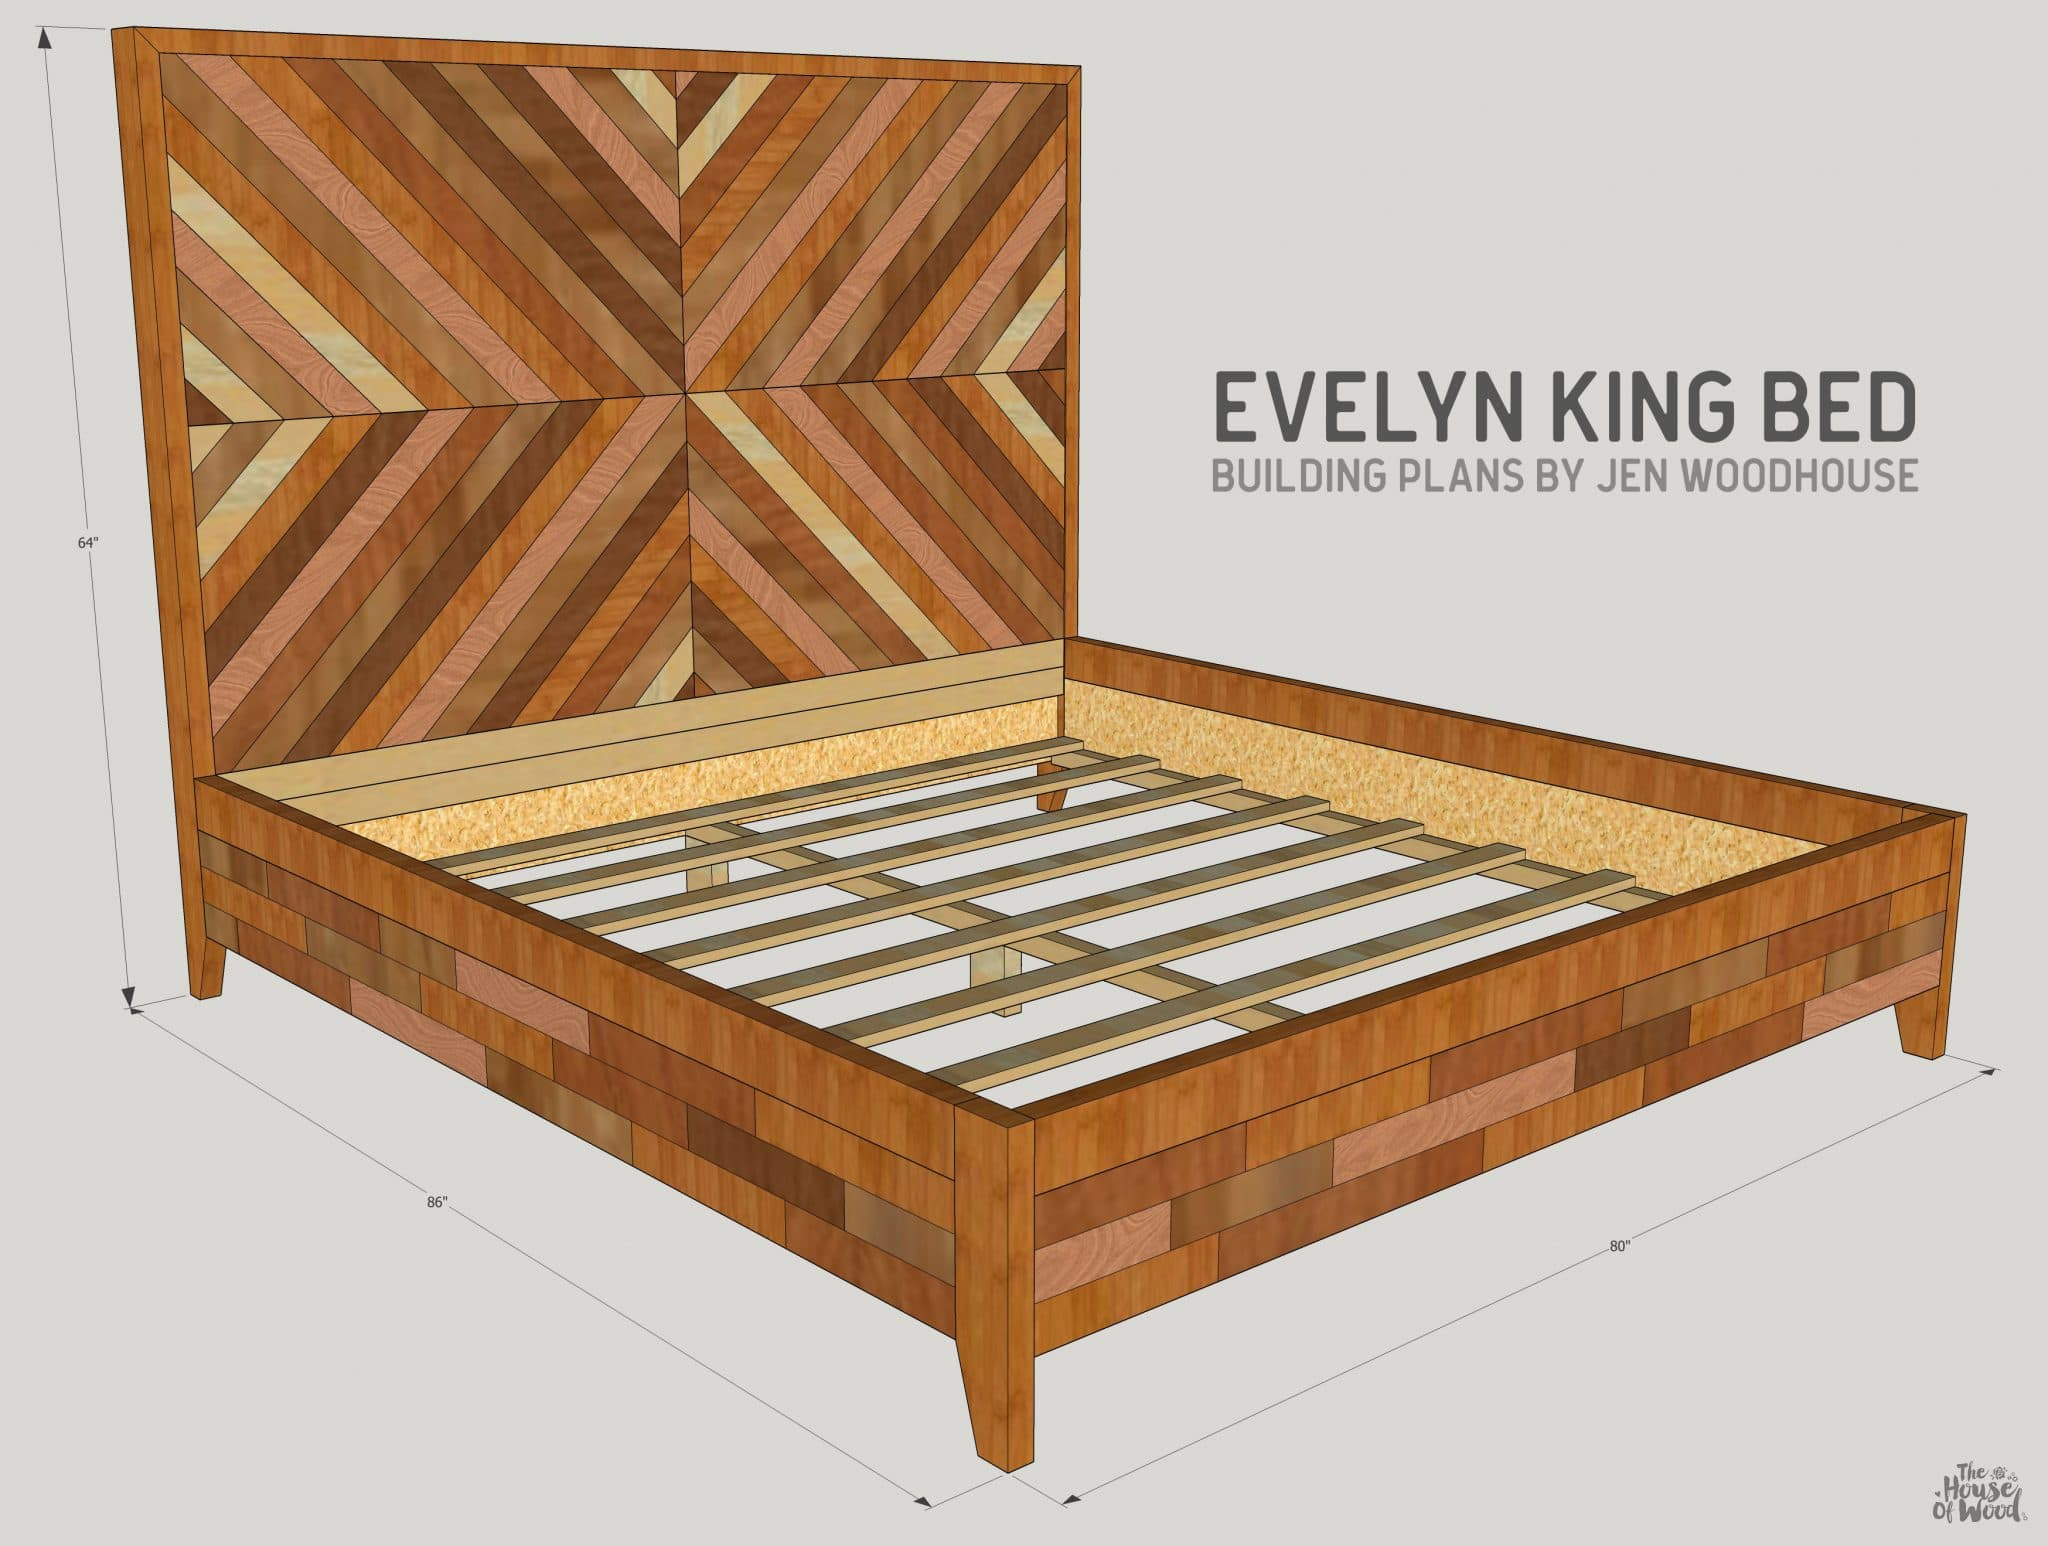 Diy west elm alexa chevron bed for House frame floor bed plans